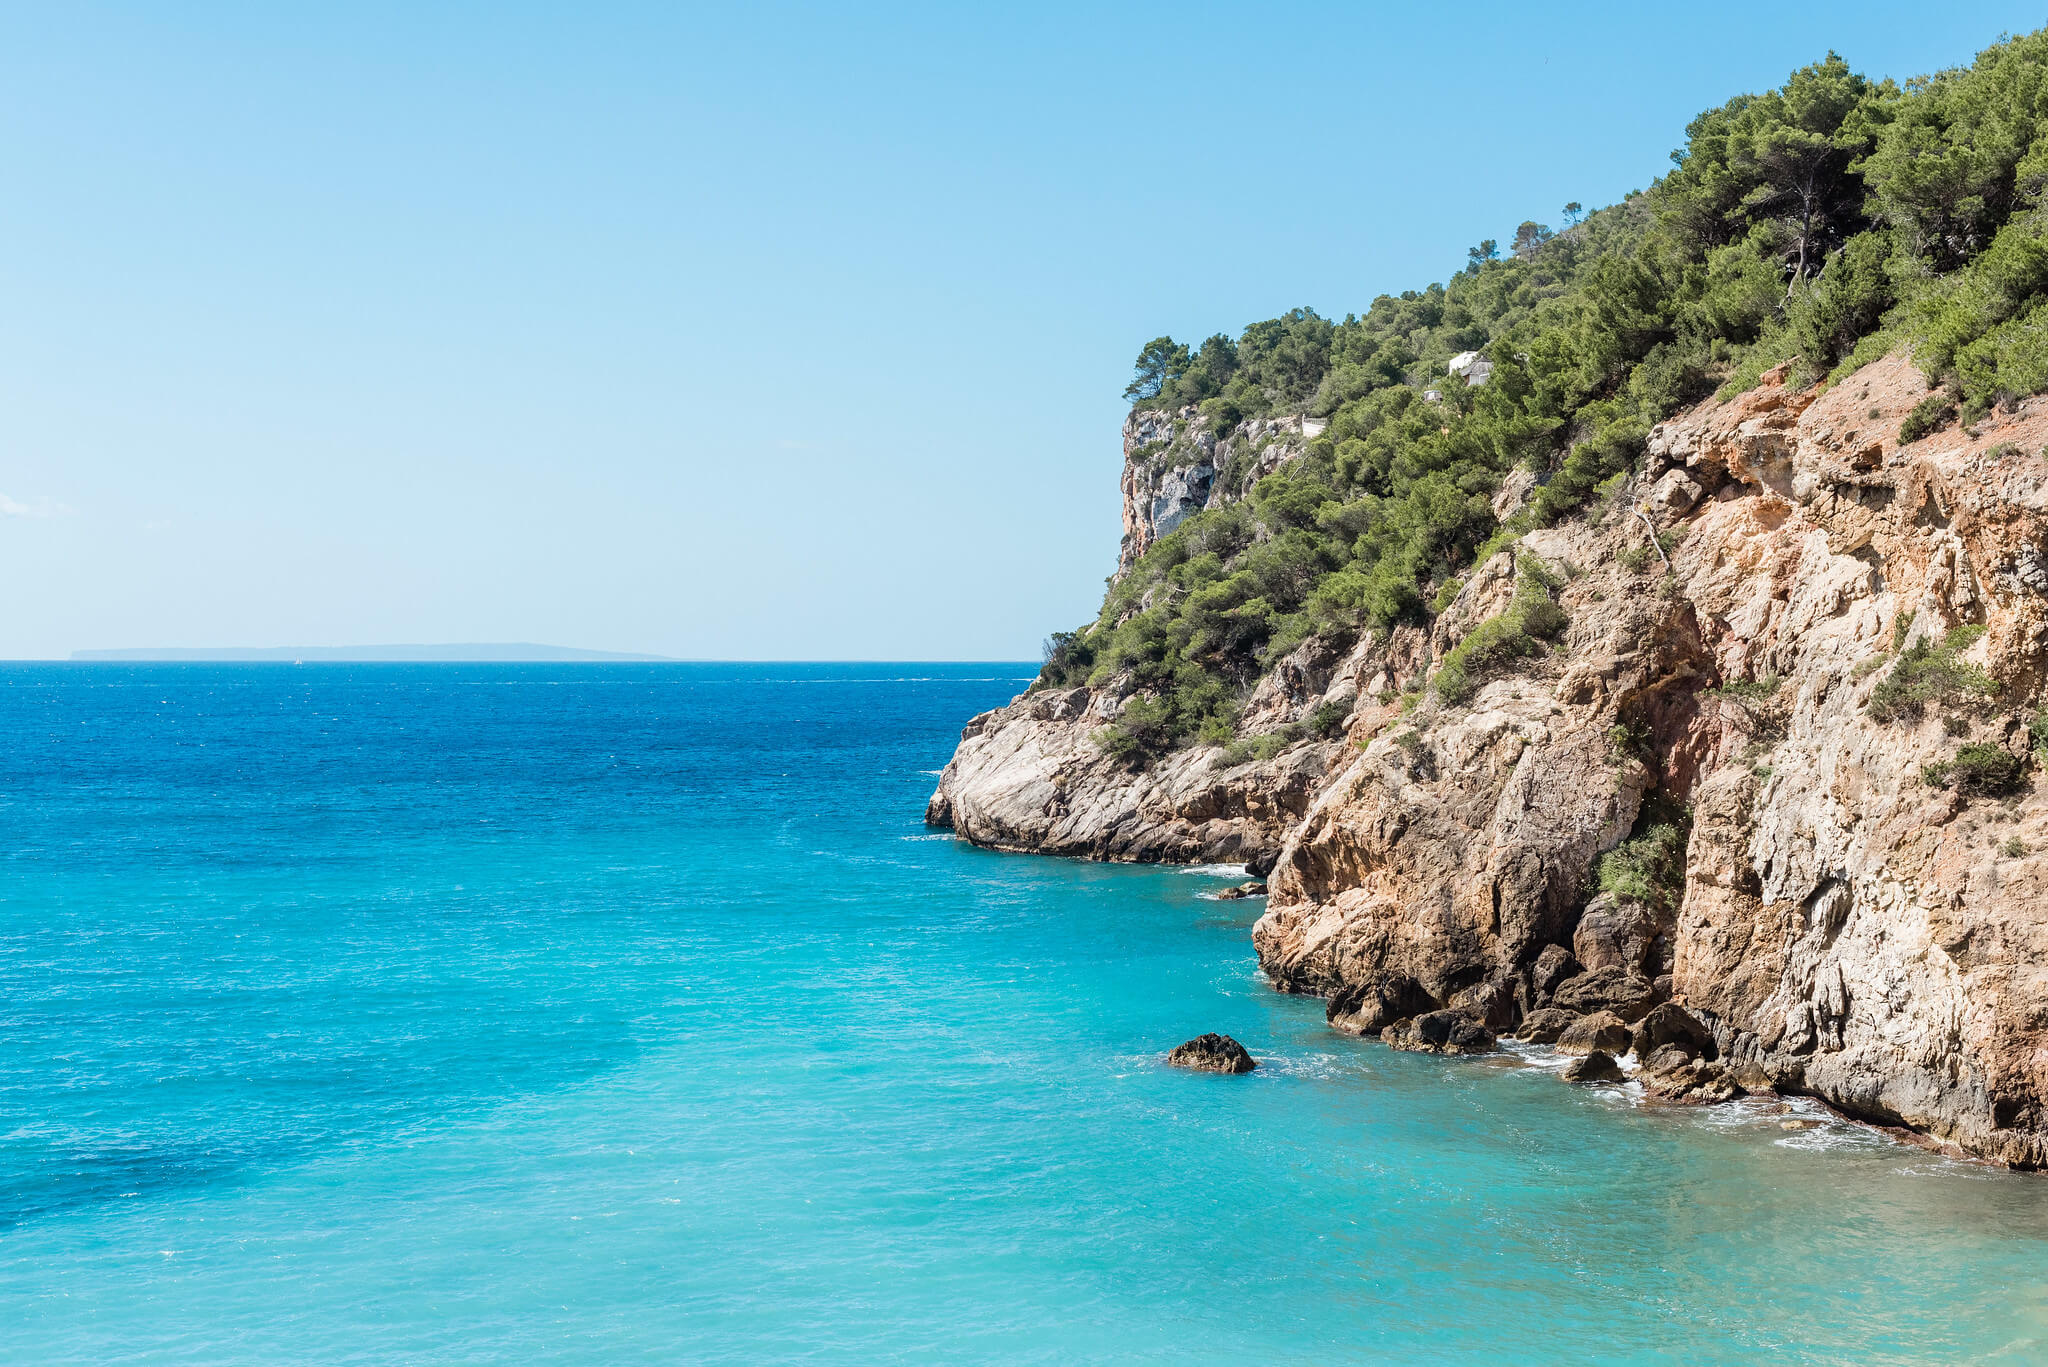 https://www.white-ibiza.com/wp-content/uploads/2020/03/ibiza-beaches-sol-den-serra-02.jpg